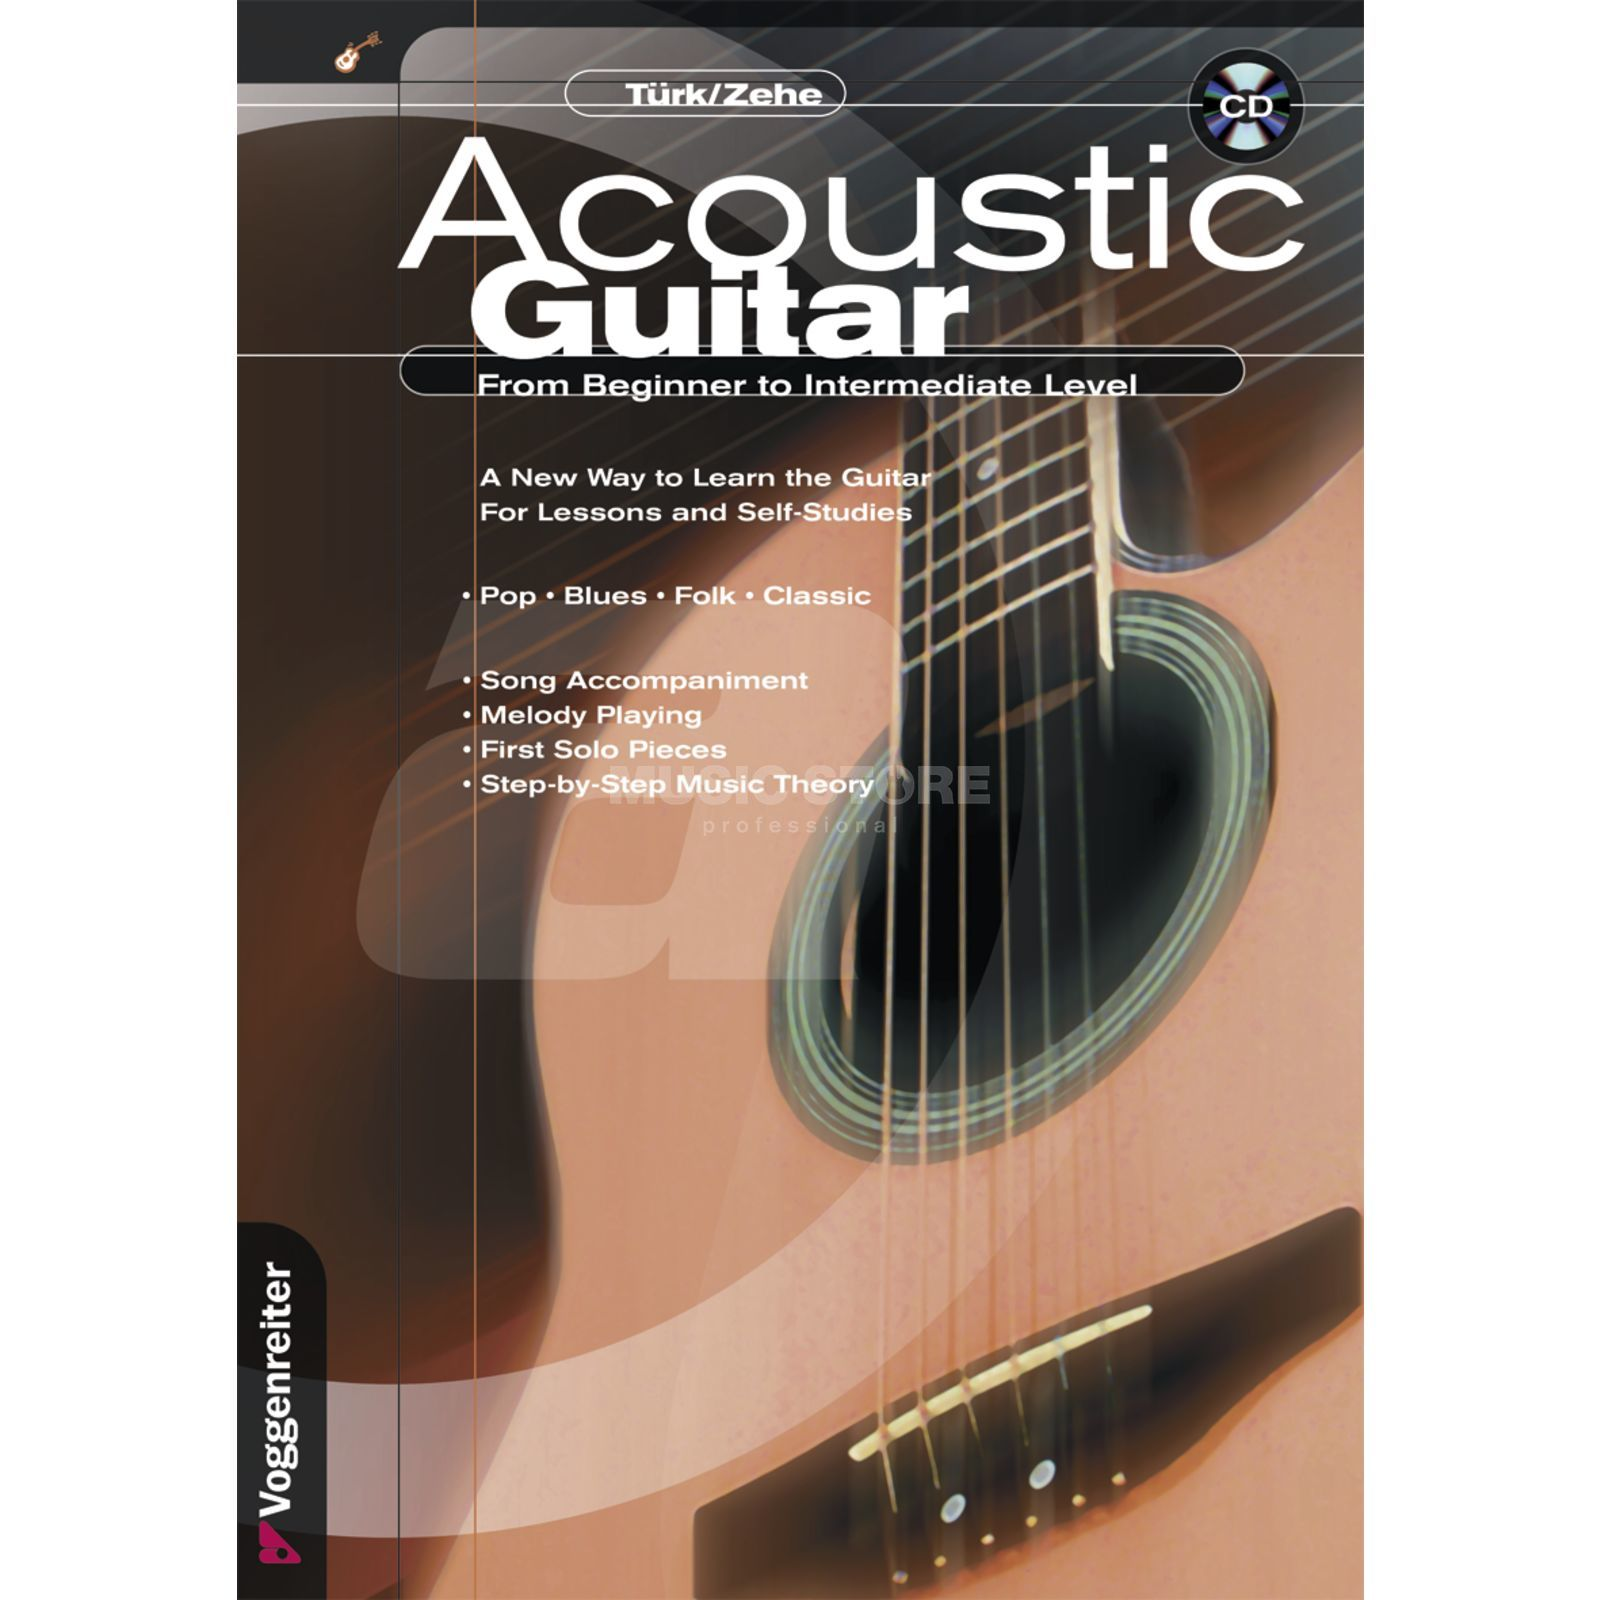 Voggenreiter Acoustic Guitar ENGLISH Türk/Zehe / incl. CD Produktbild